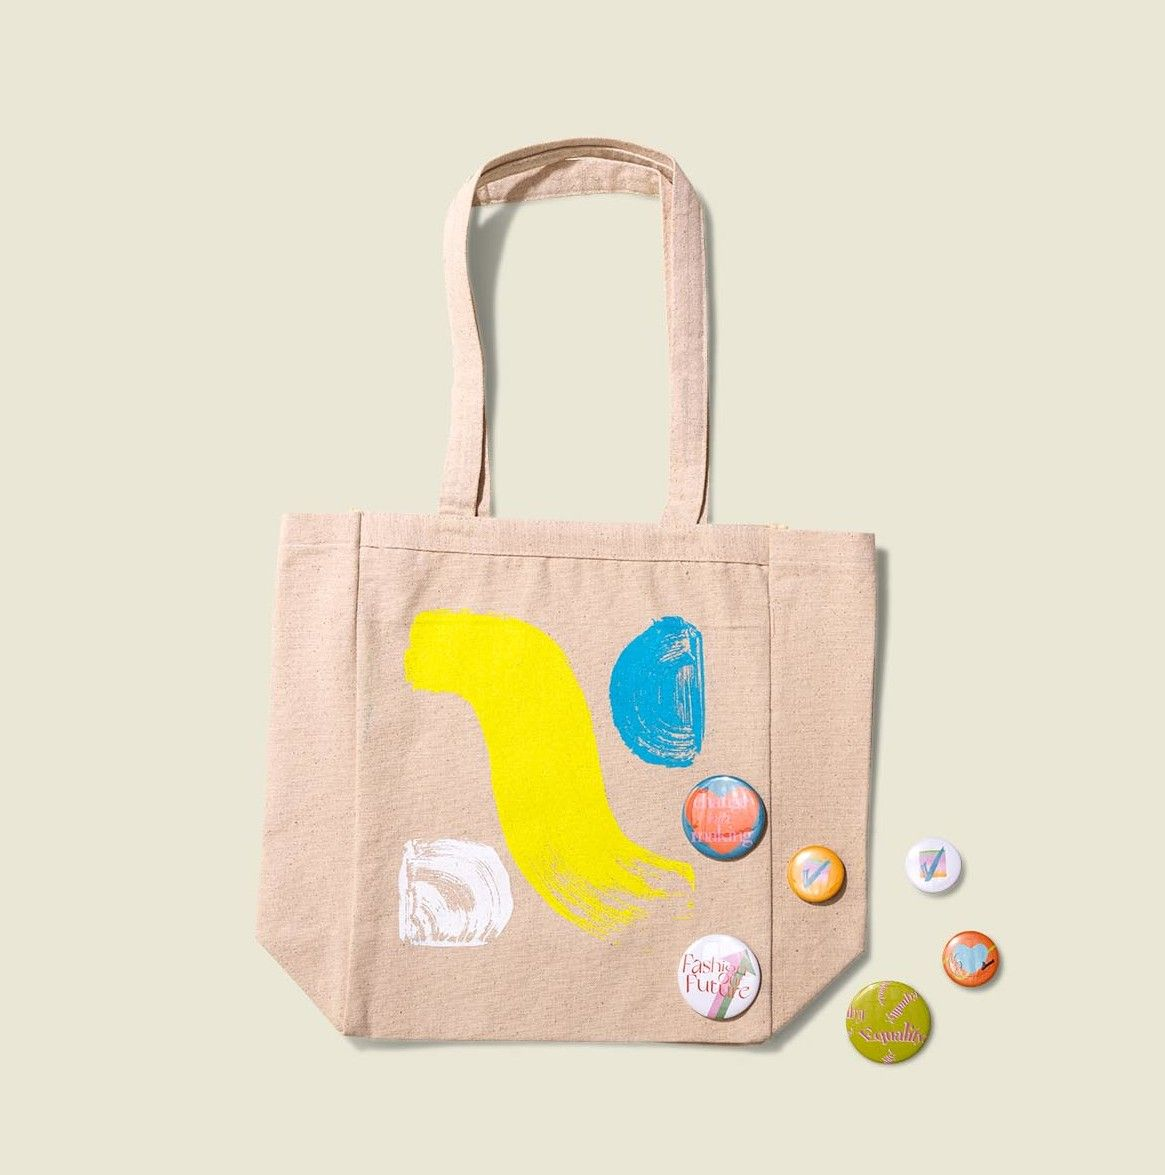 Tote bags with pin buttons